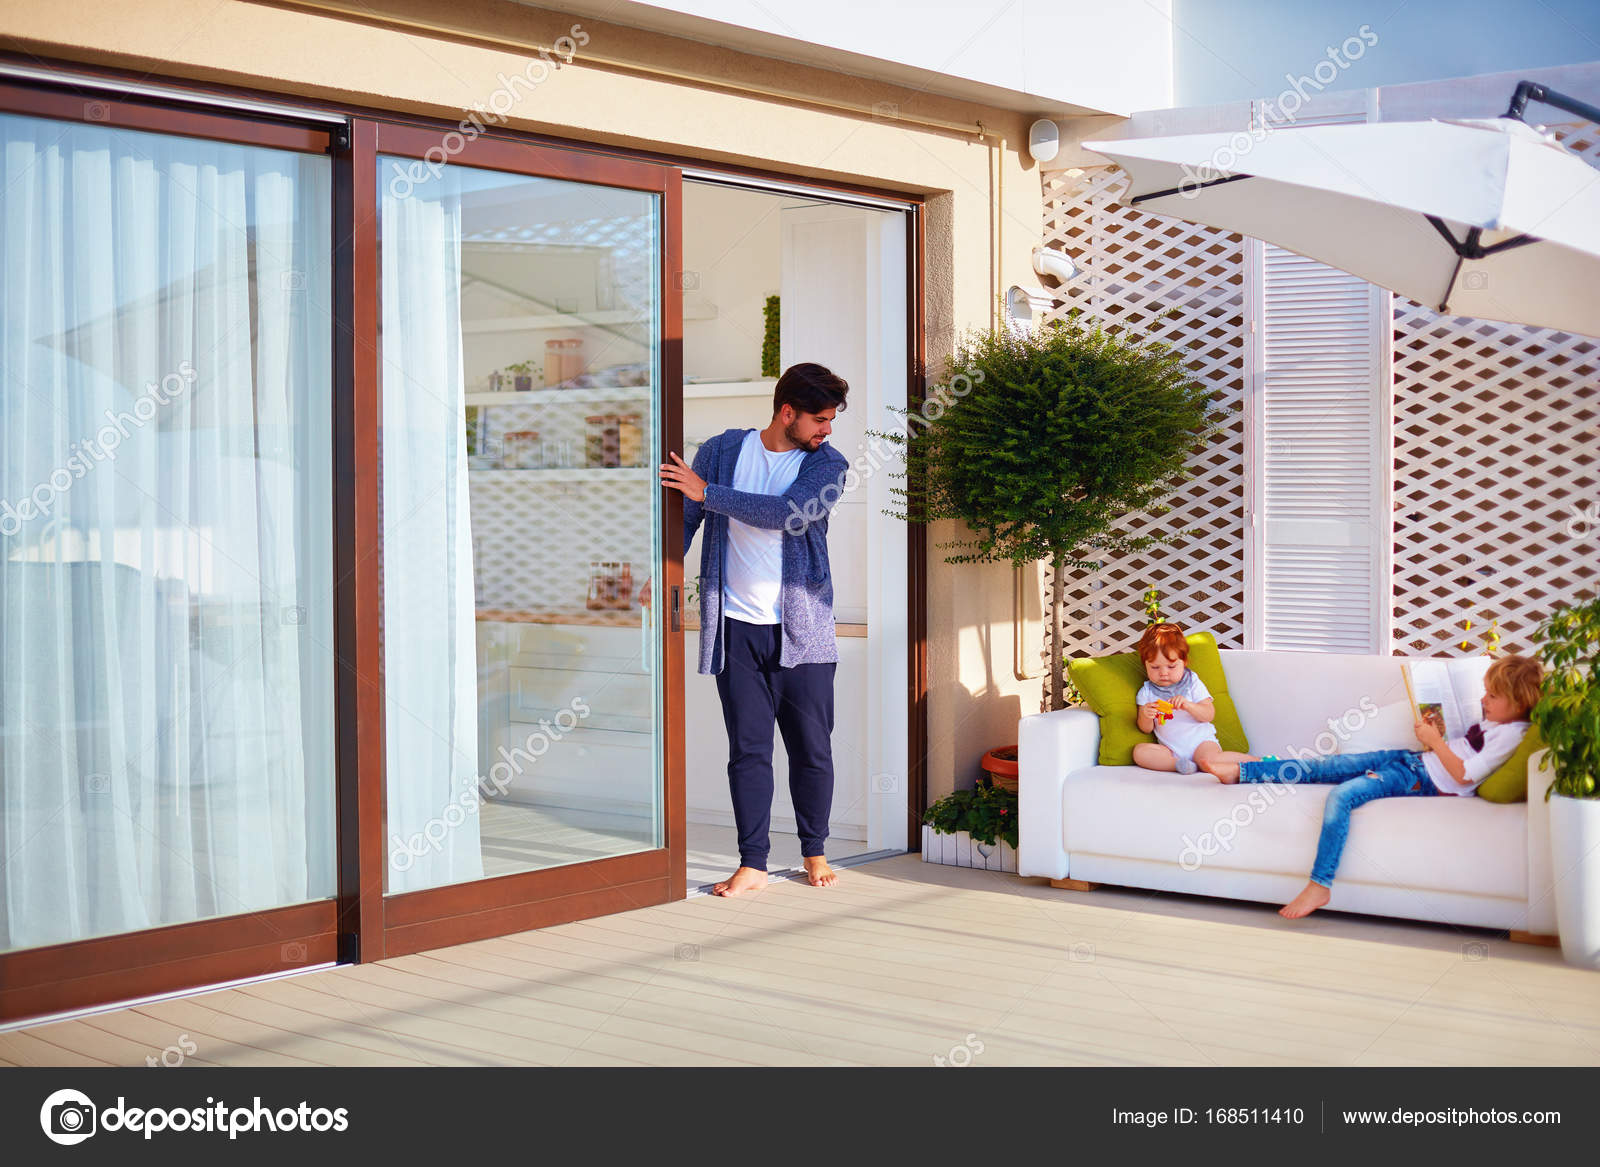 Family relaxing outdoor on rooftop patio with open space kitchen and sliding doors \u2014 Stock Photo & family relaxing outdoor on rooftop patio with open space kitchen and ...